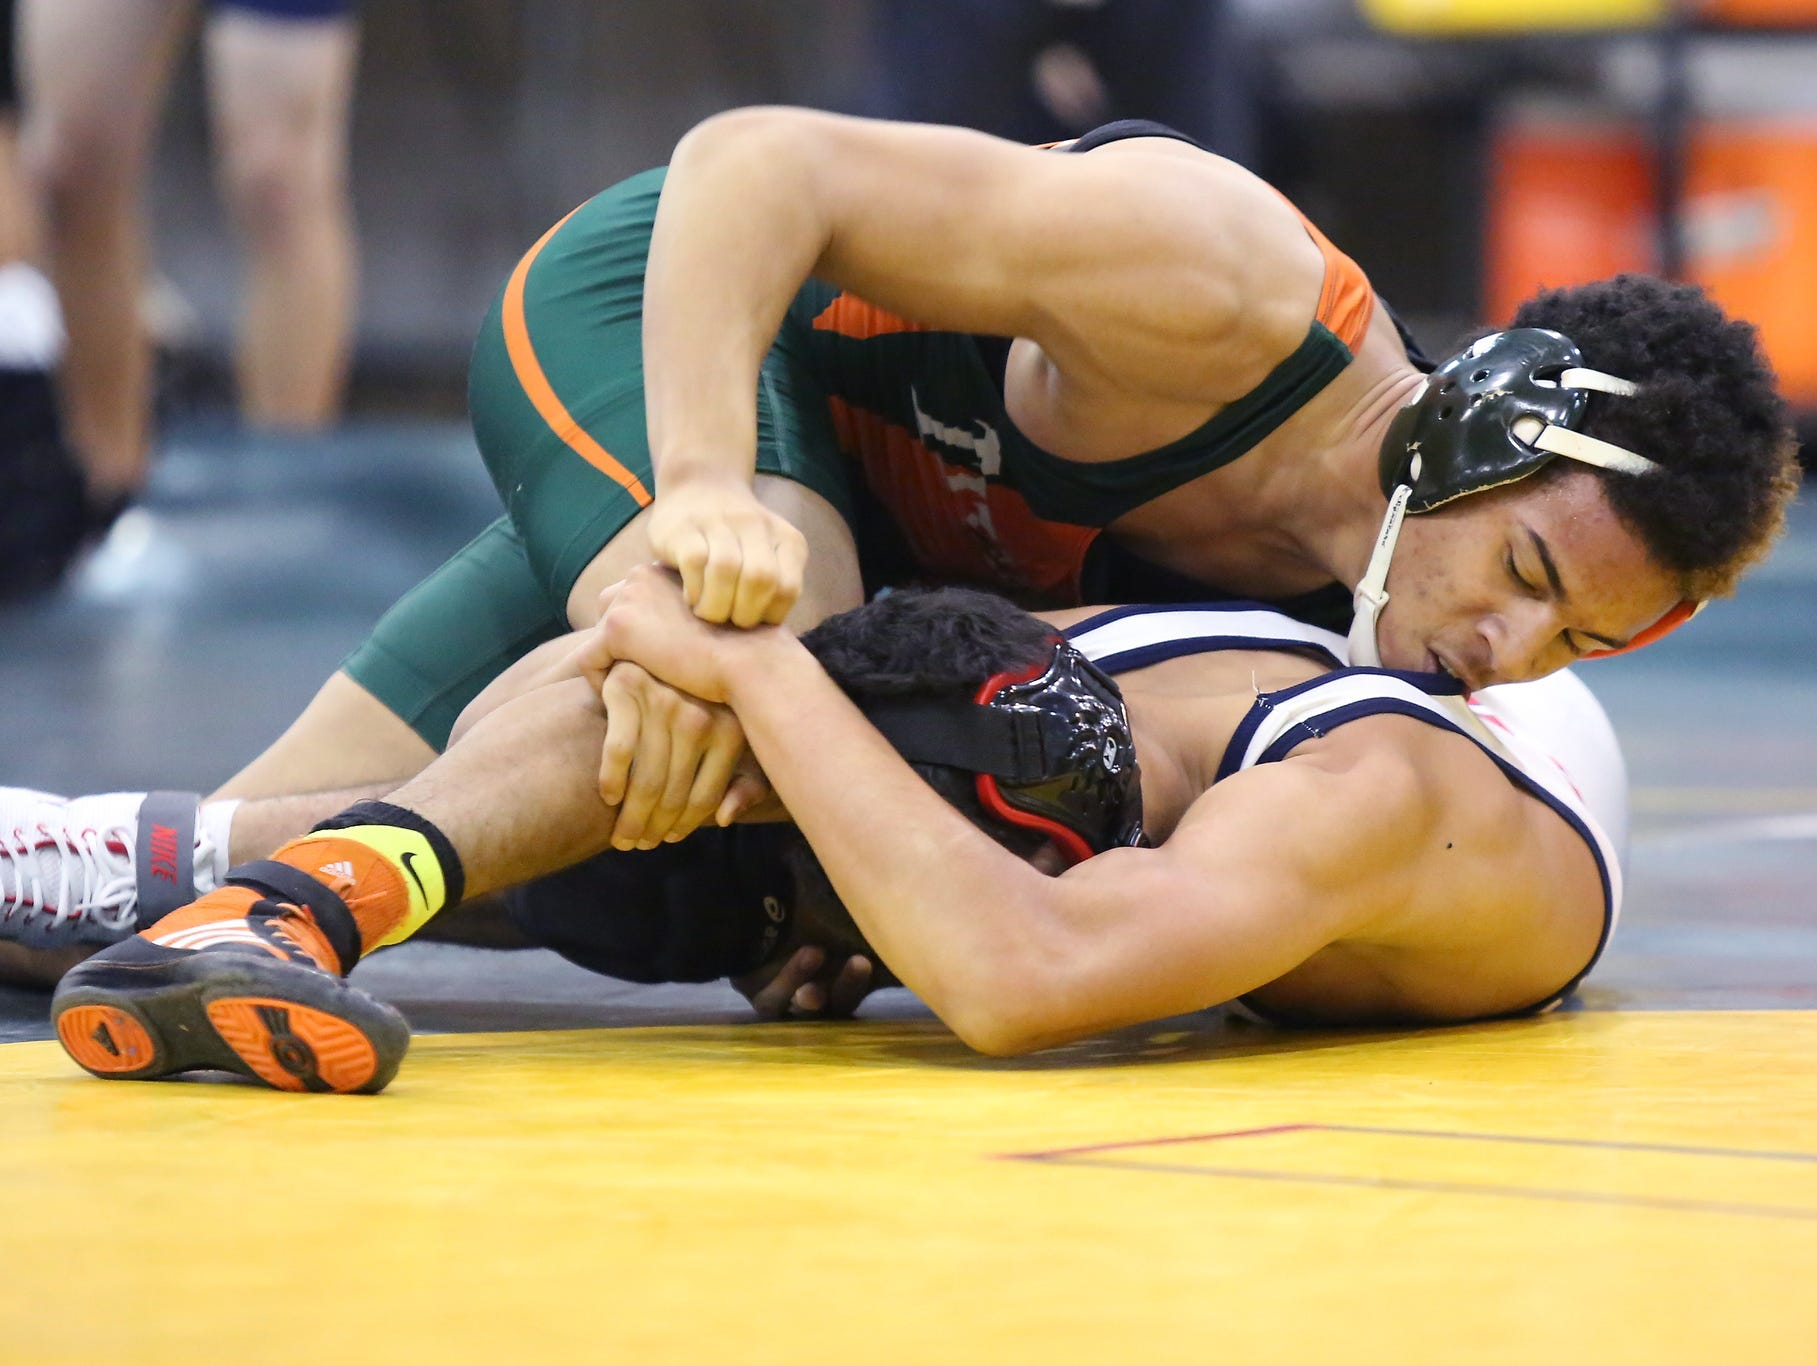 East Ramapo's Romello Bradley, top, wrestles Yonkers' Fredy Guevara in a 145-pound match during the quad meet for the Section 1 dual meet championships at Ramapo High School in Spring Valley on Wednesday, Dec. 2, 2015. East Ramapo defeated Yonkers 53-29 and advances to the semifinals.